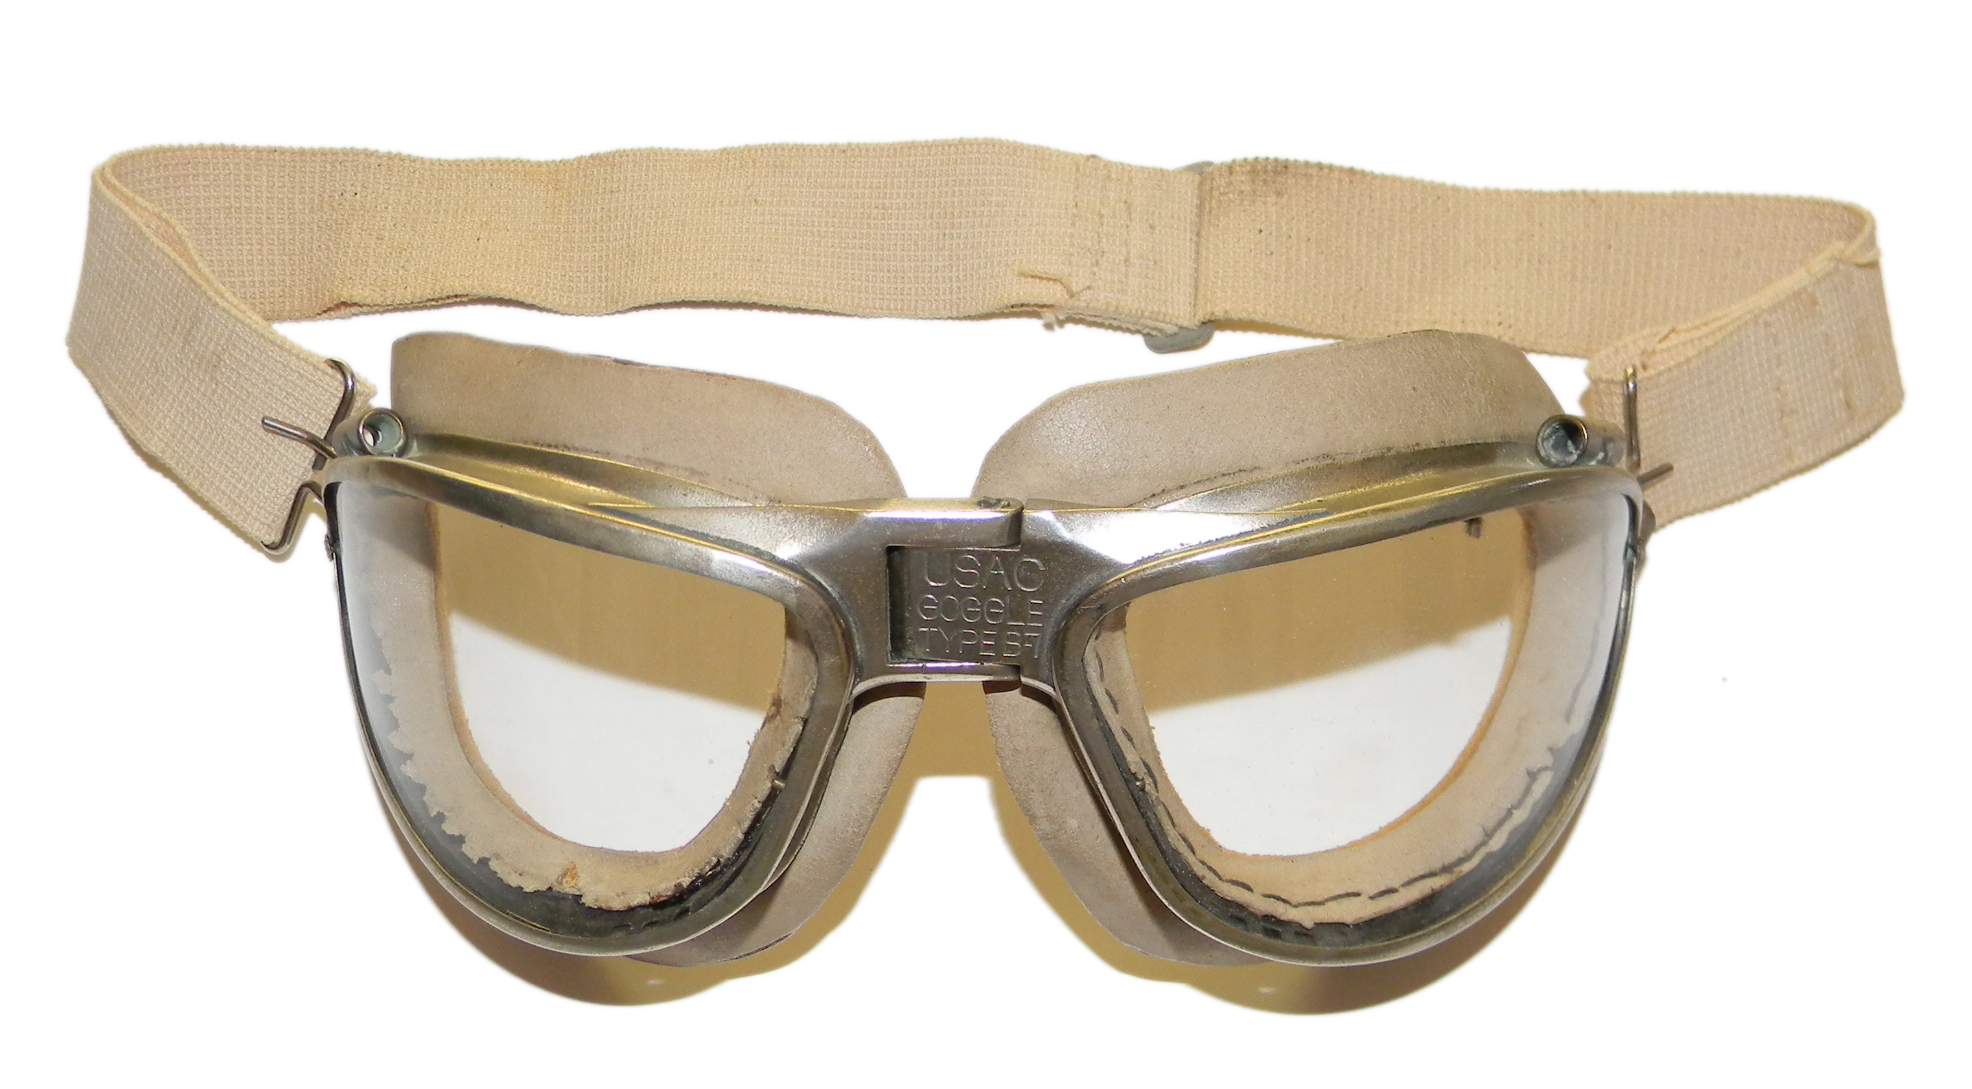 Army Air Corps B-7 flight goggles